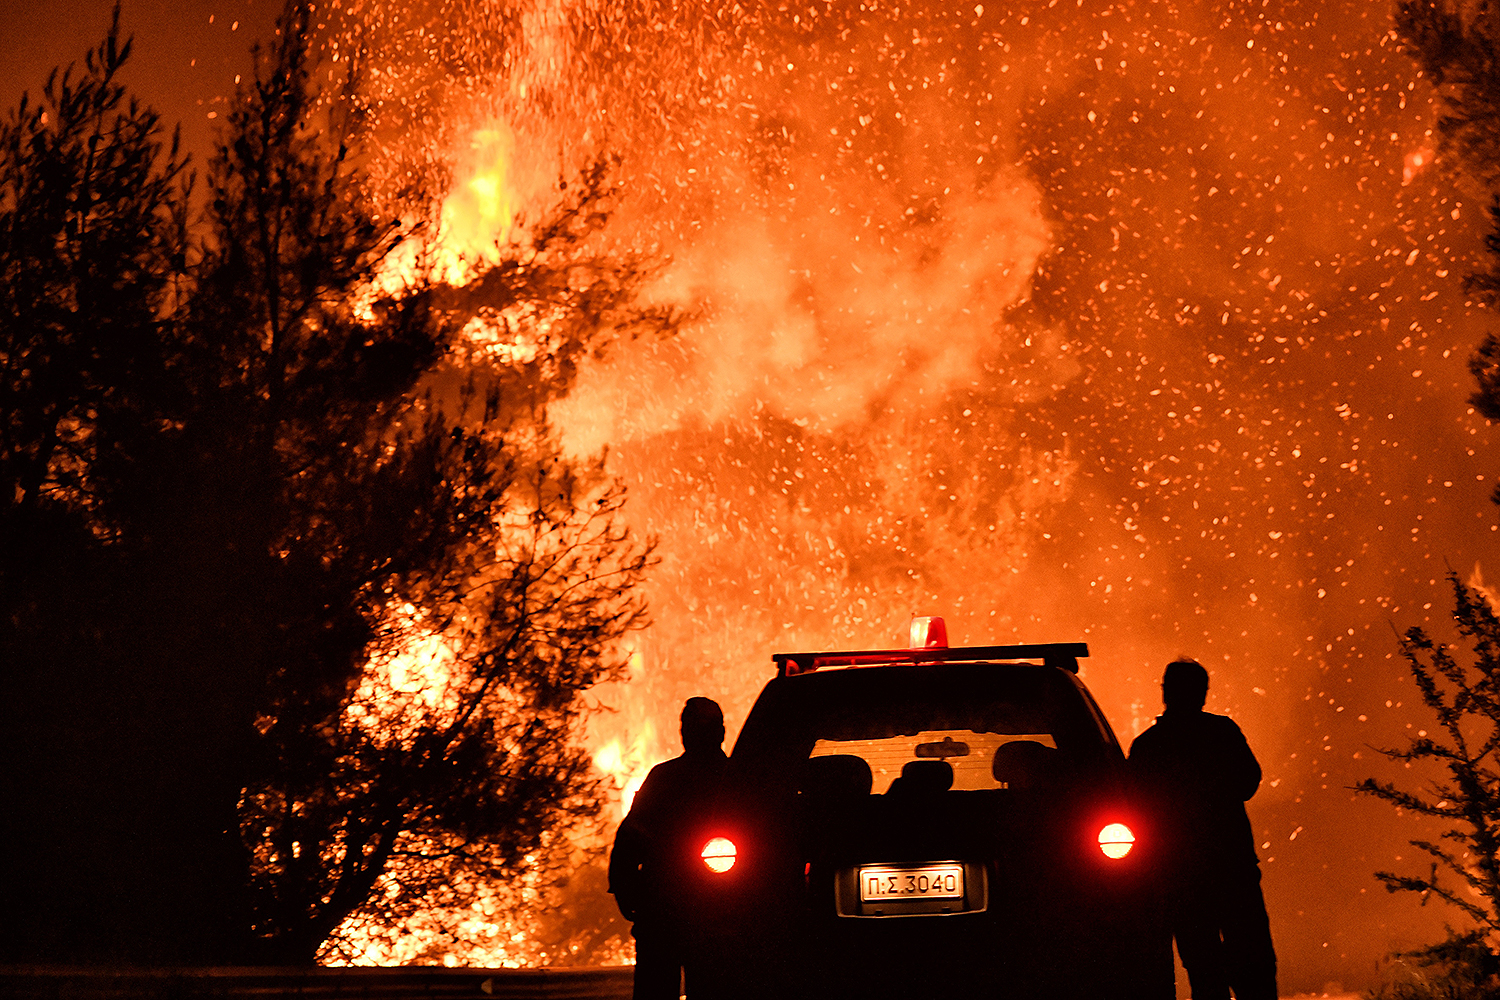 Firefighters stand near a pine forest wildfire fanned by strong winds near the village of Athikia, Greece, on July 22. VALERIE GACHE/AFP via Getty Images